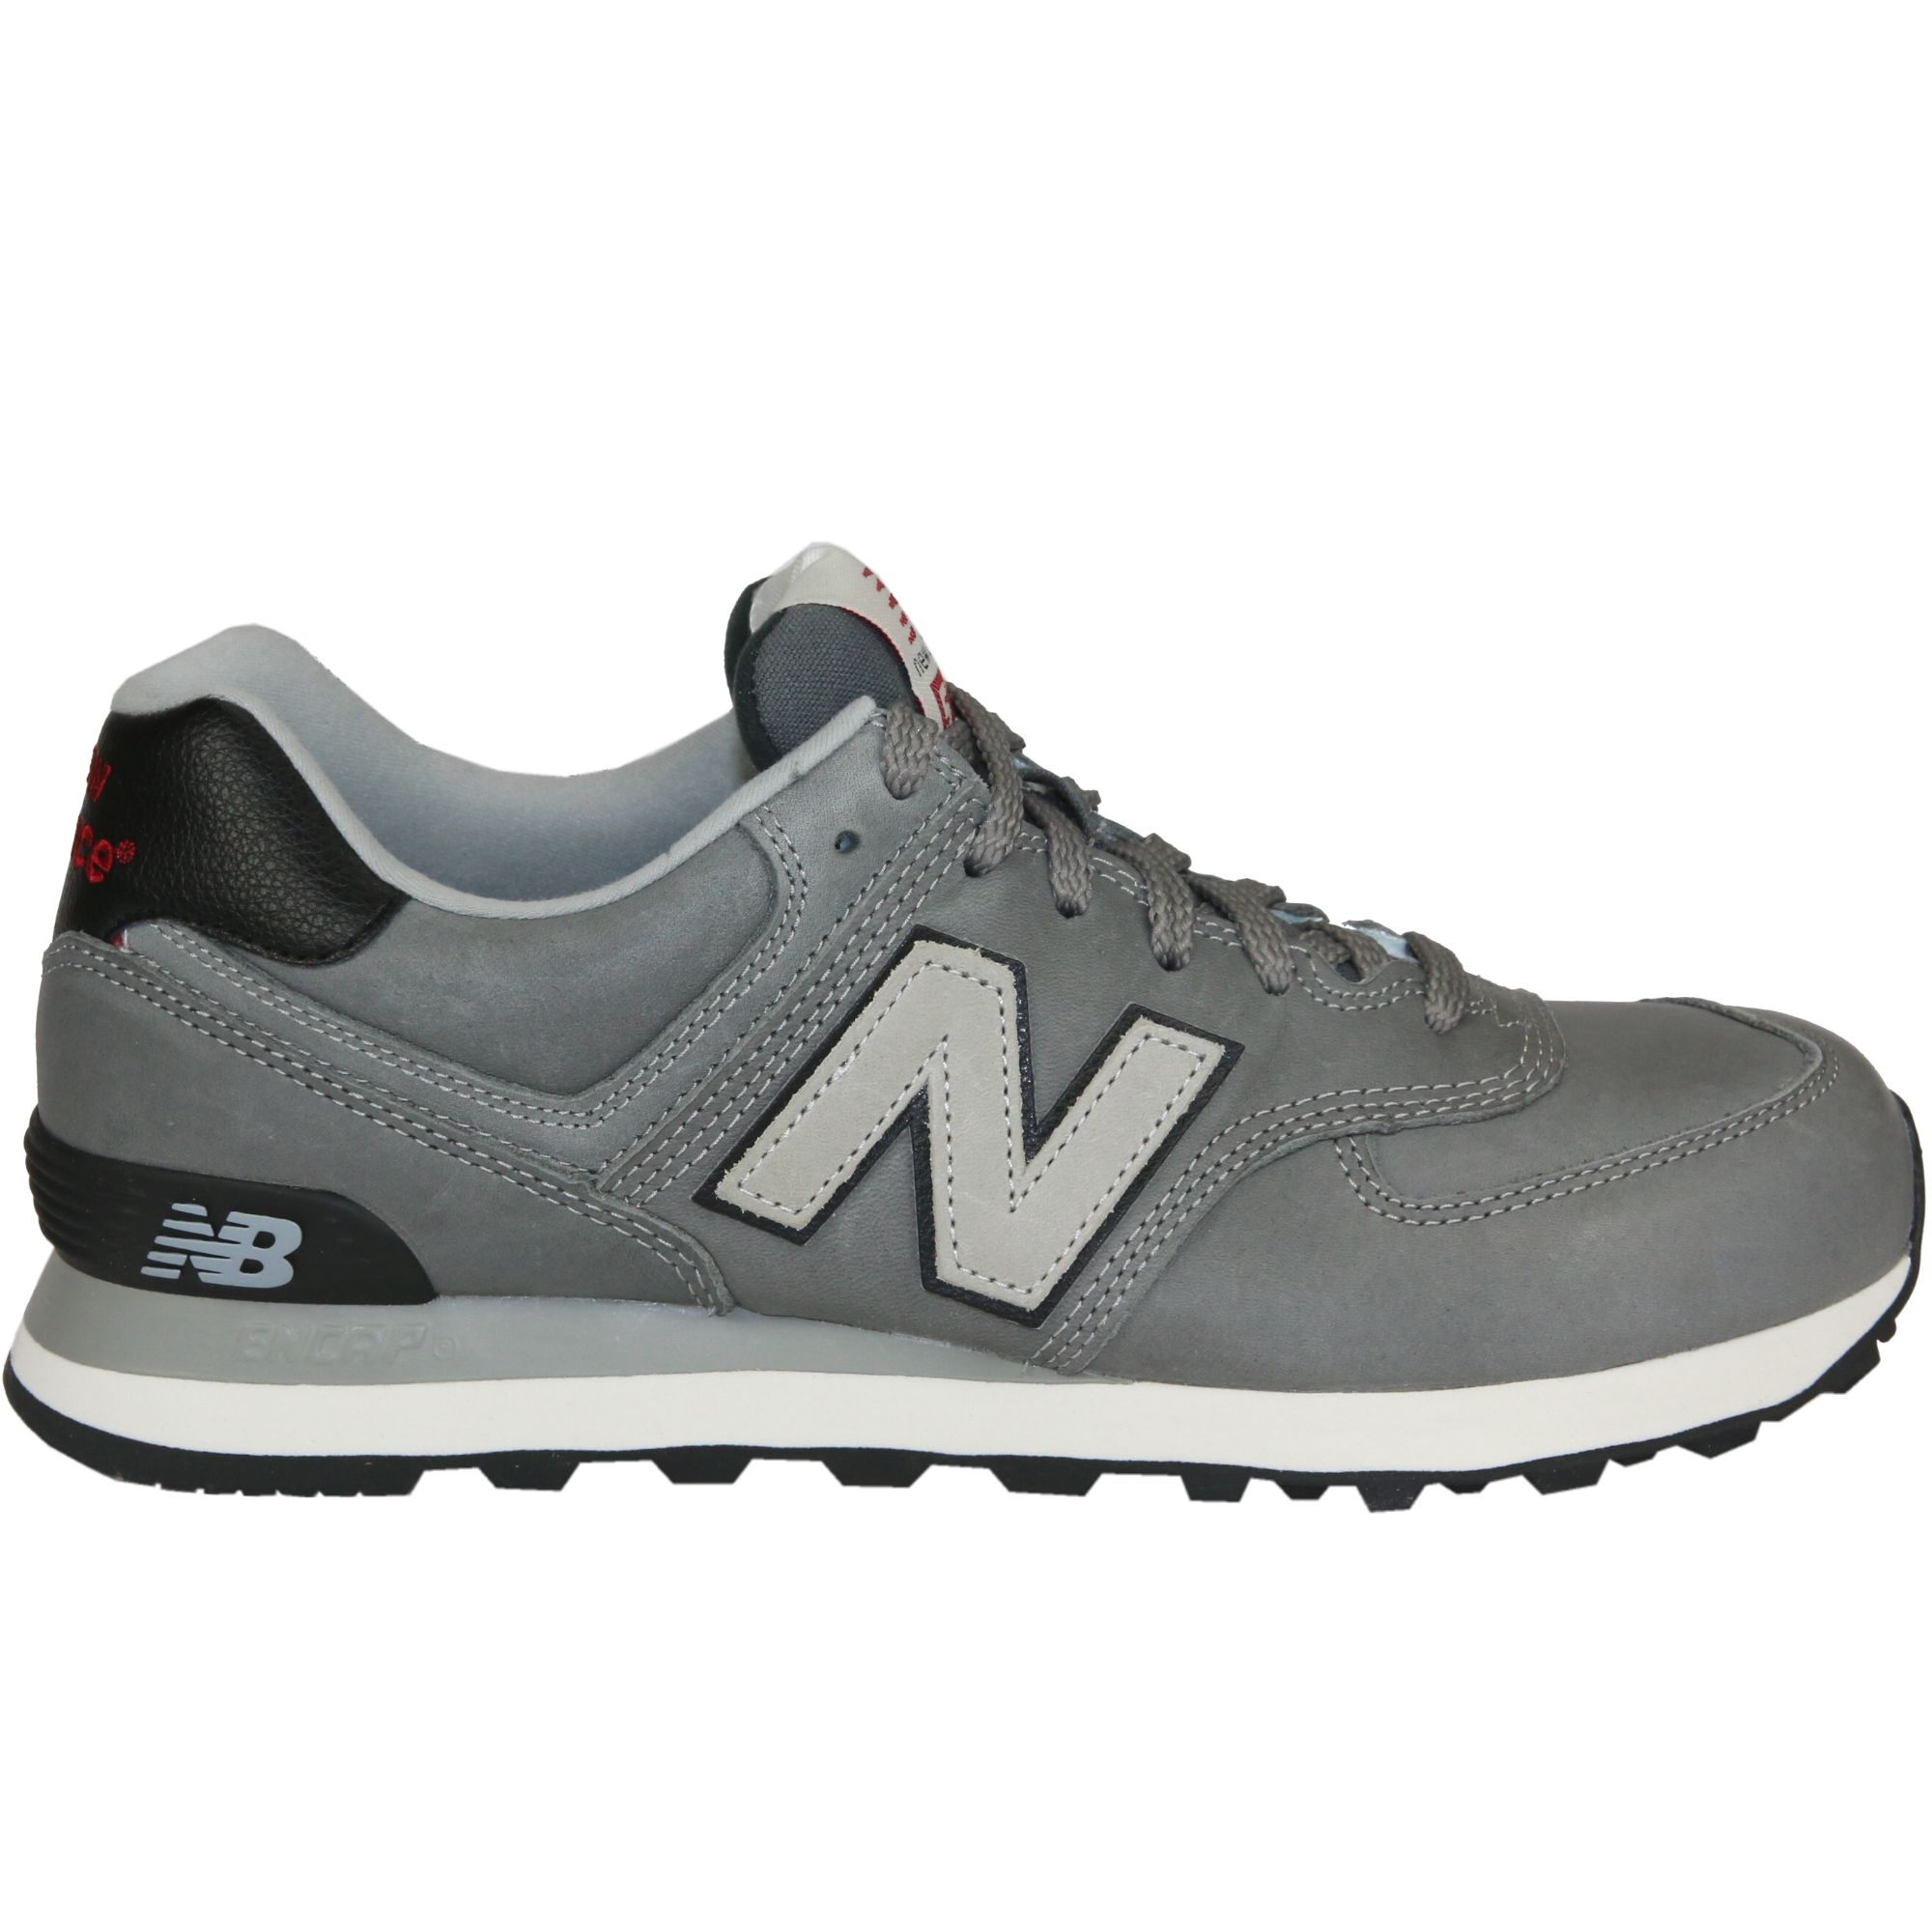 new balance ml 574 schuhe turnschuhe sneaker herren ebay. Black Bedroom Furniture Sets. Home Design Ideas